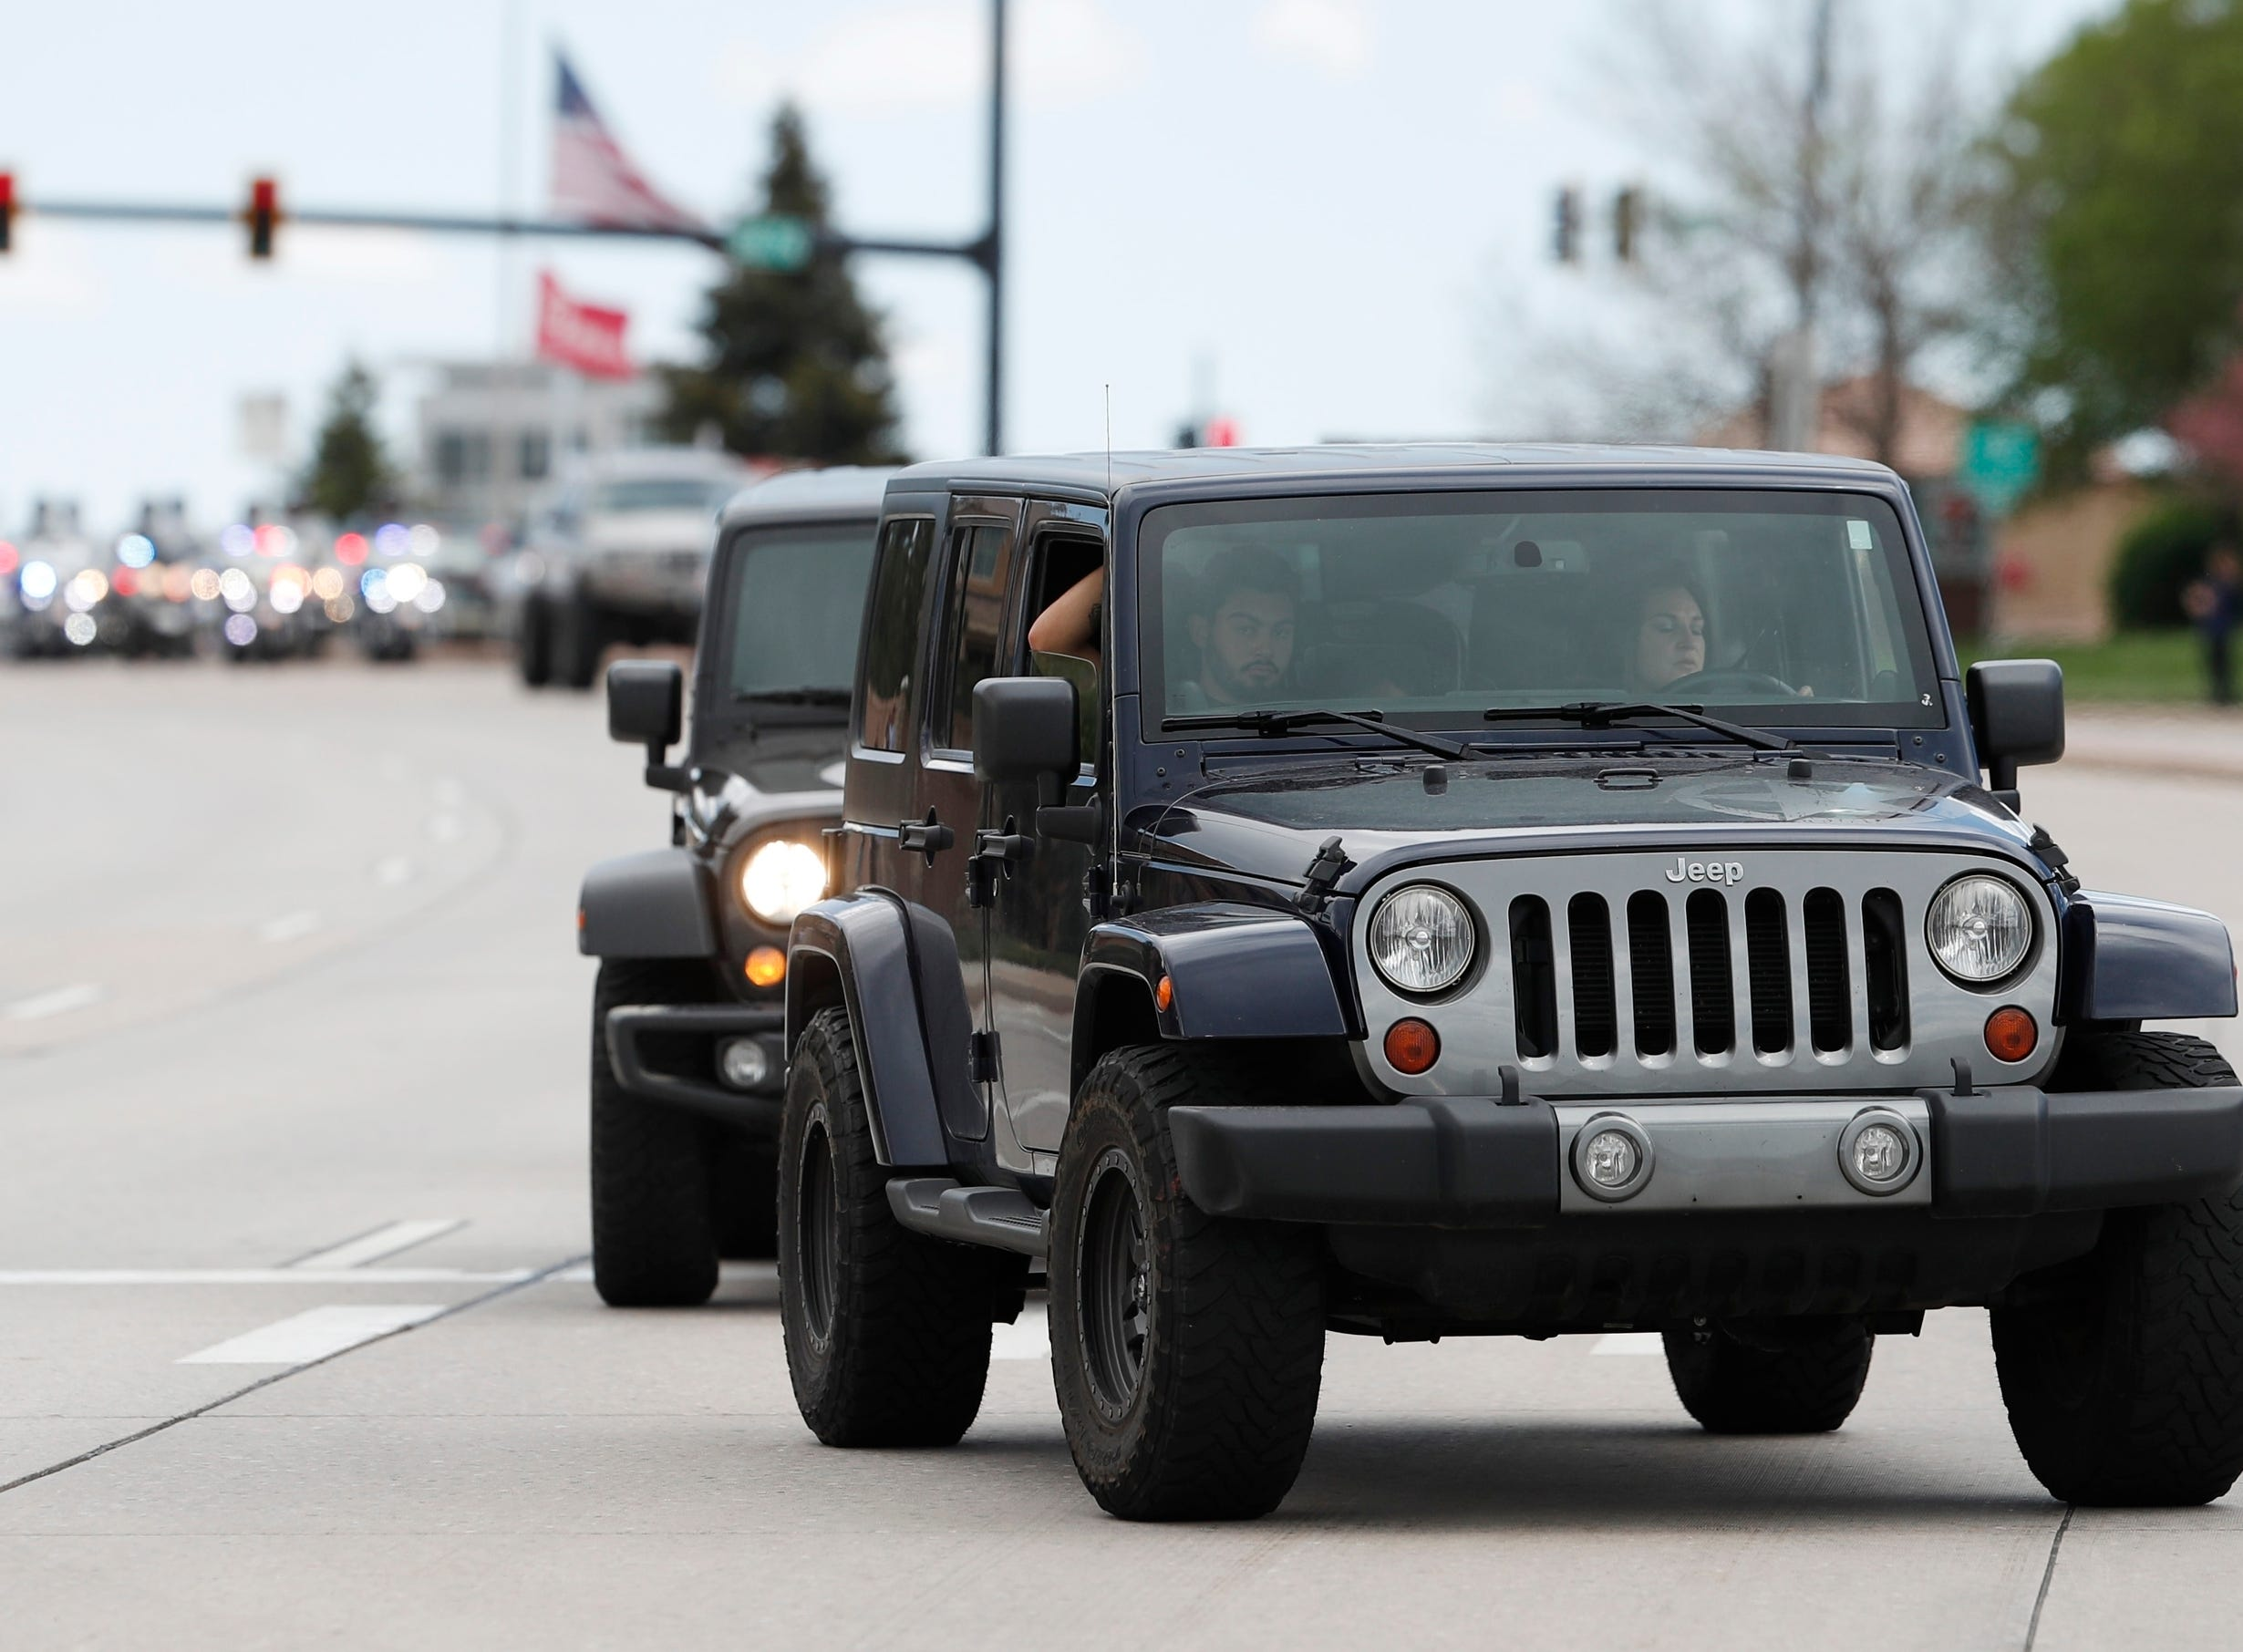 More than 600 Jeeps lead a caravan to the memorial service for Kendrick Castillo, who was killed in the assault on the STEM Highlands Ranch School, Wednesday, May 15, 2019, in Highlands Ranch, Colo.